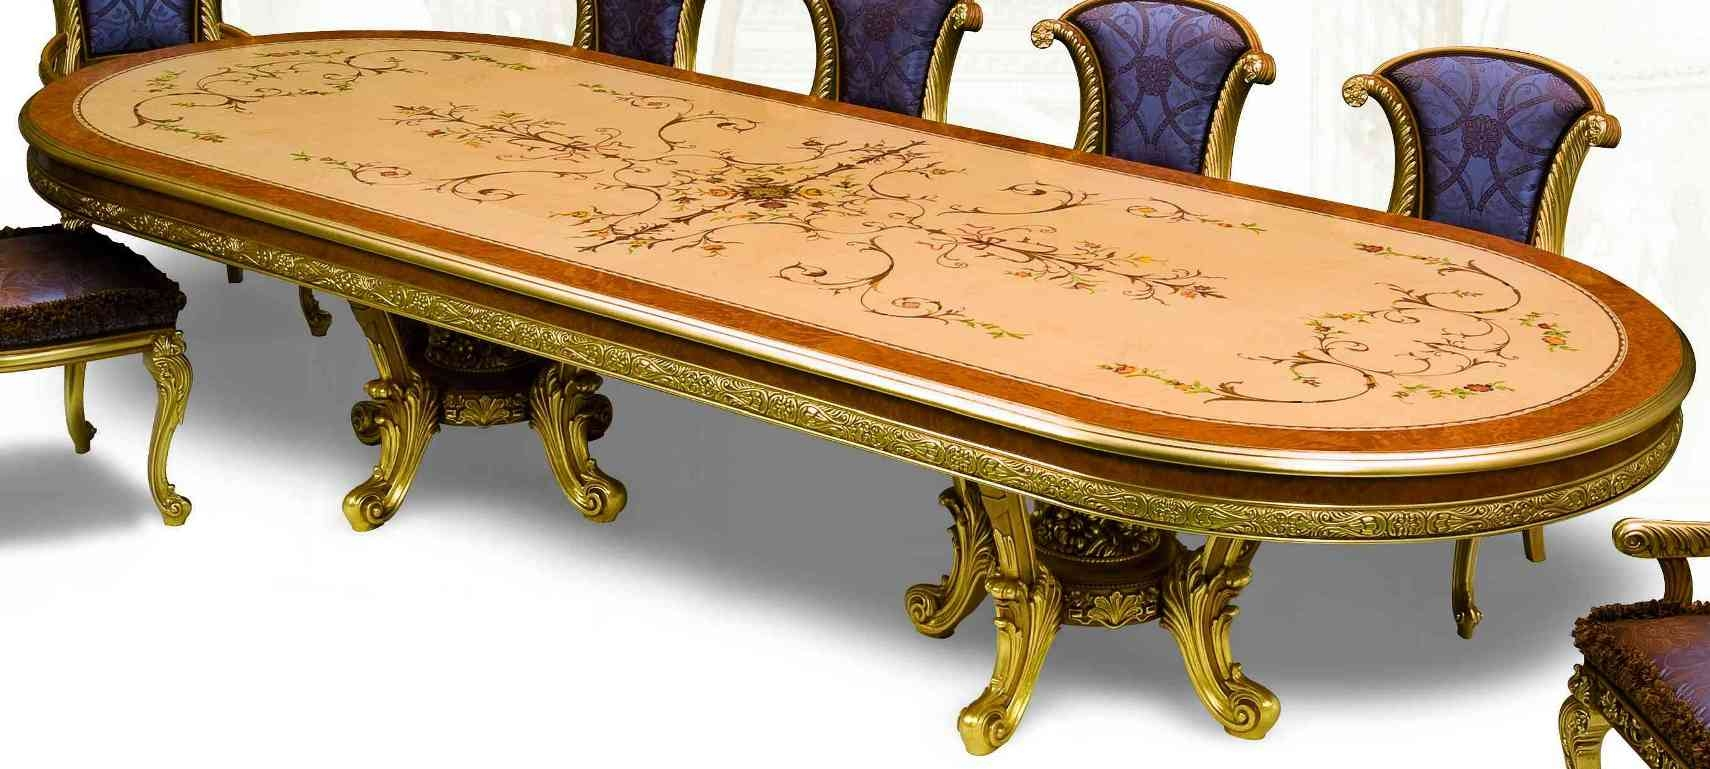 21 exquisite marquetry and detail luxury dining furniture for Expensive dining tables